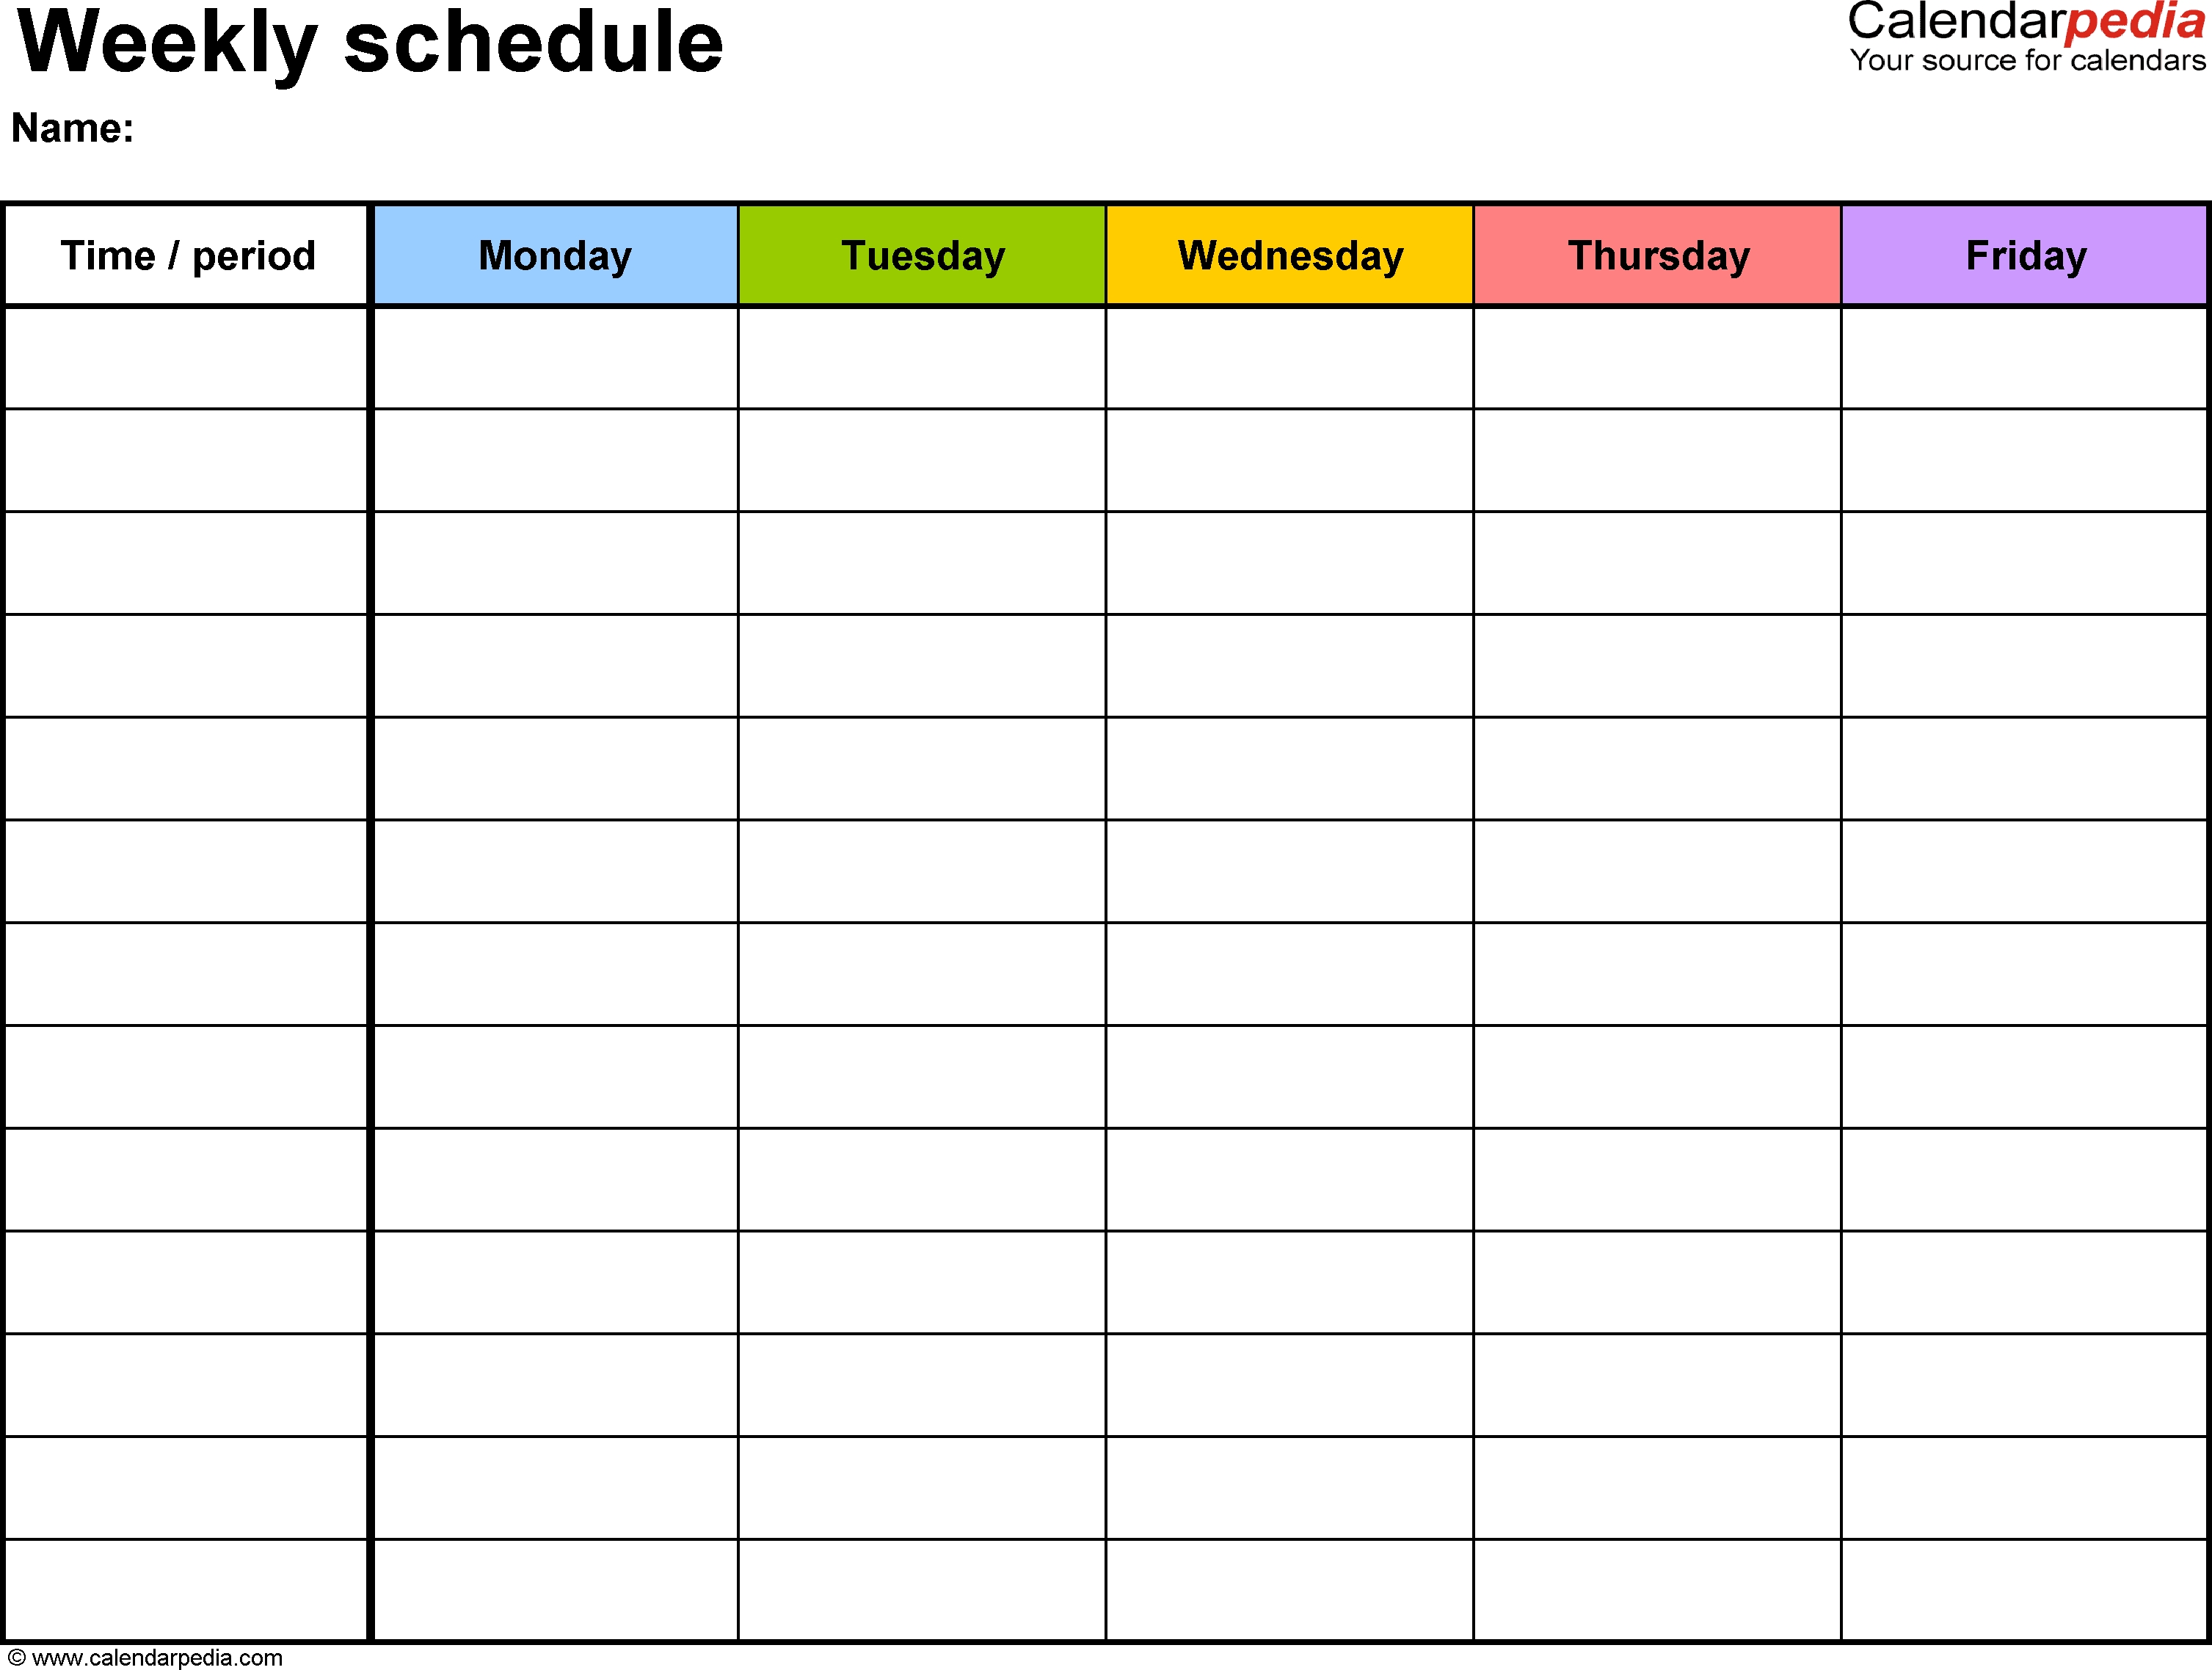 Free Weekly Schedule Templates For Excel - 18 Templates regarding Kid Days Of The Week Calendar Template